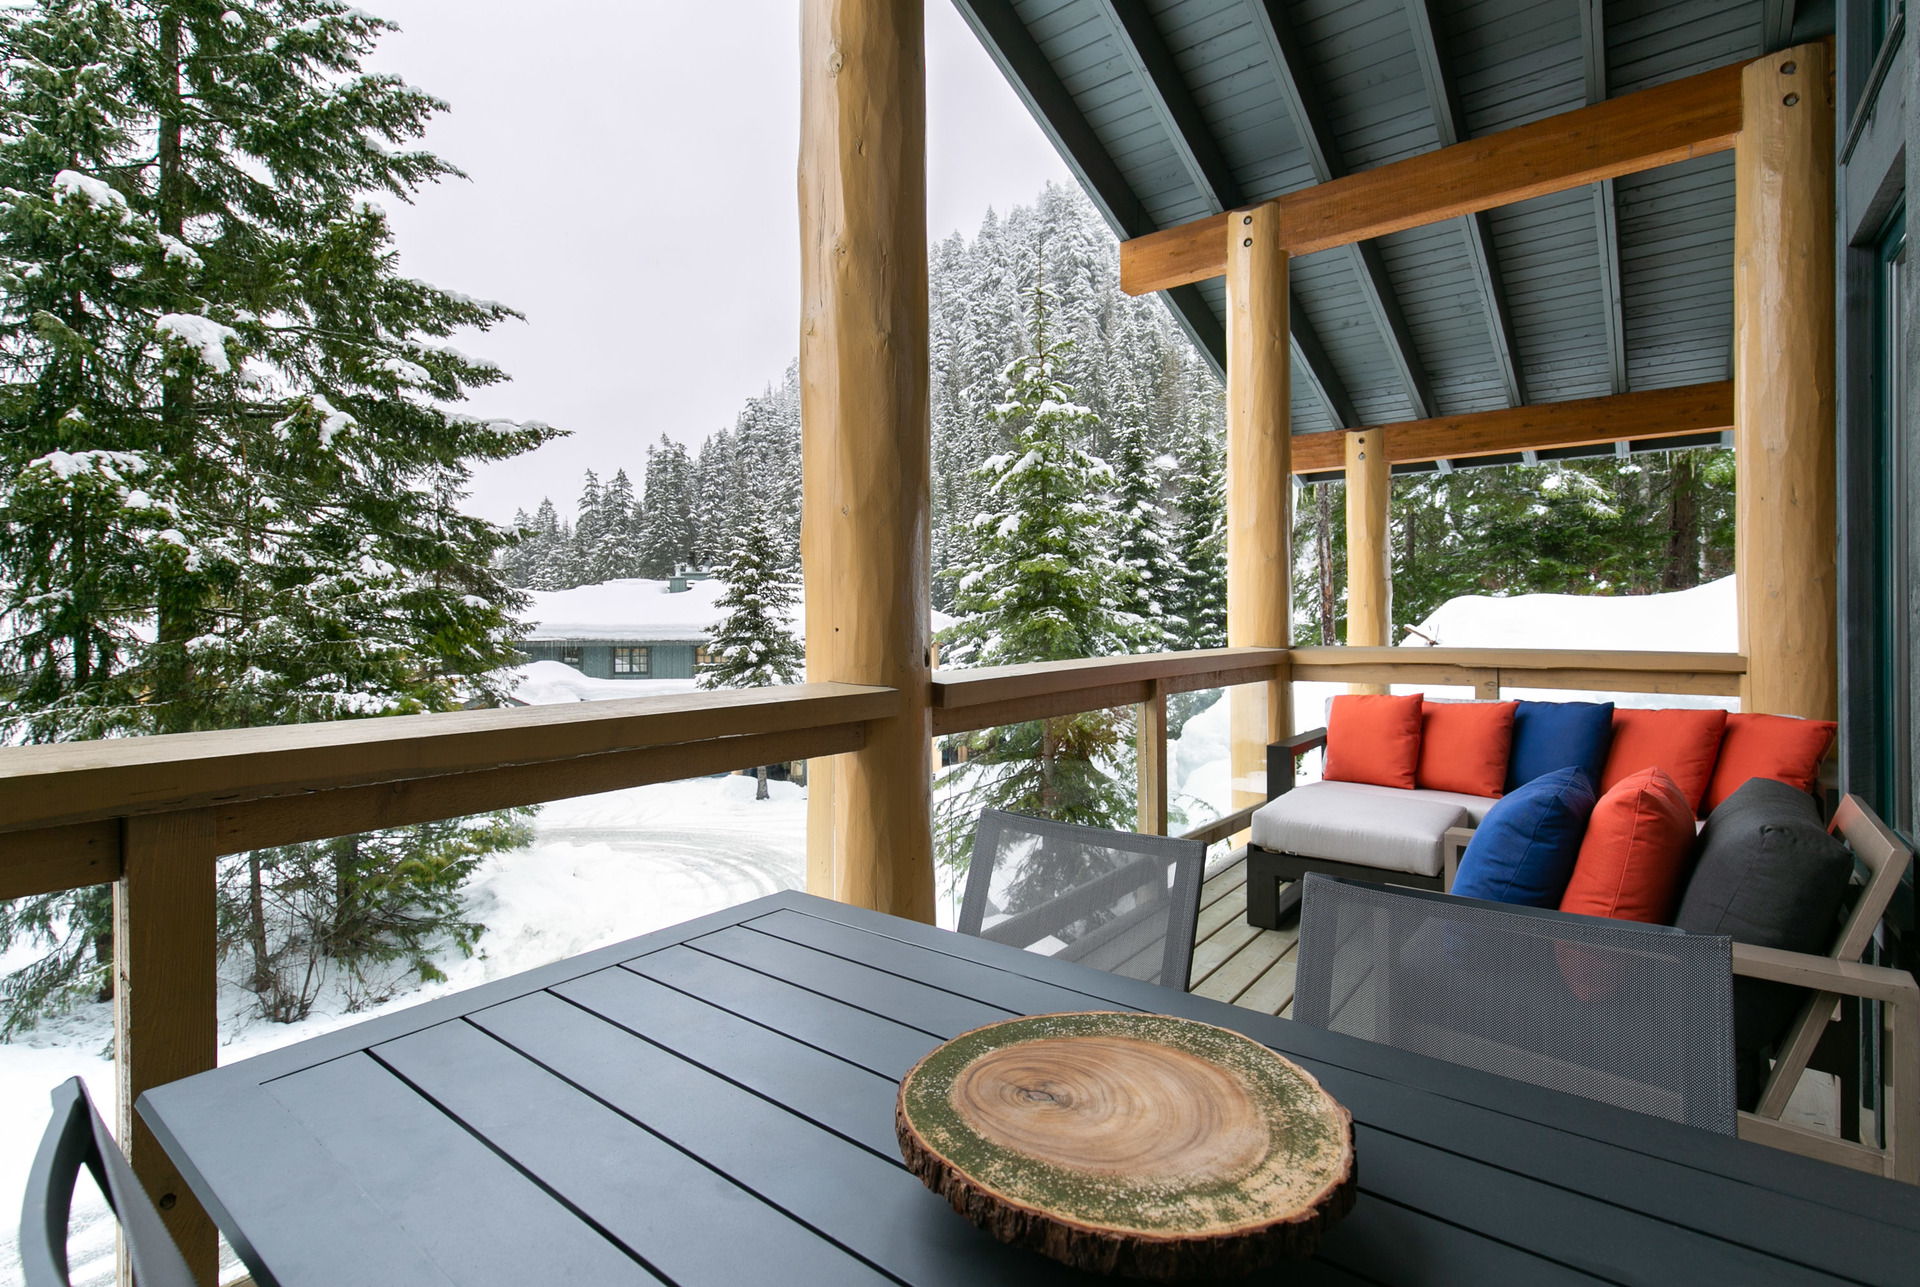 18 at 29 - 2250 Nordic Drive, Nordic, Whistler